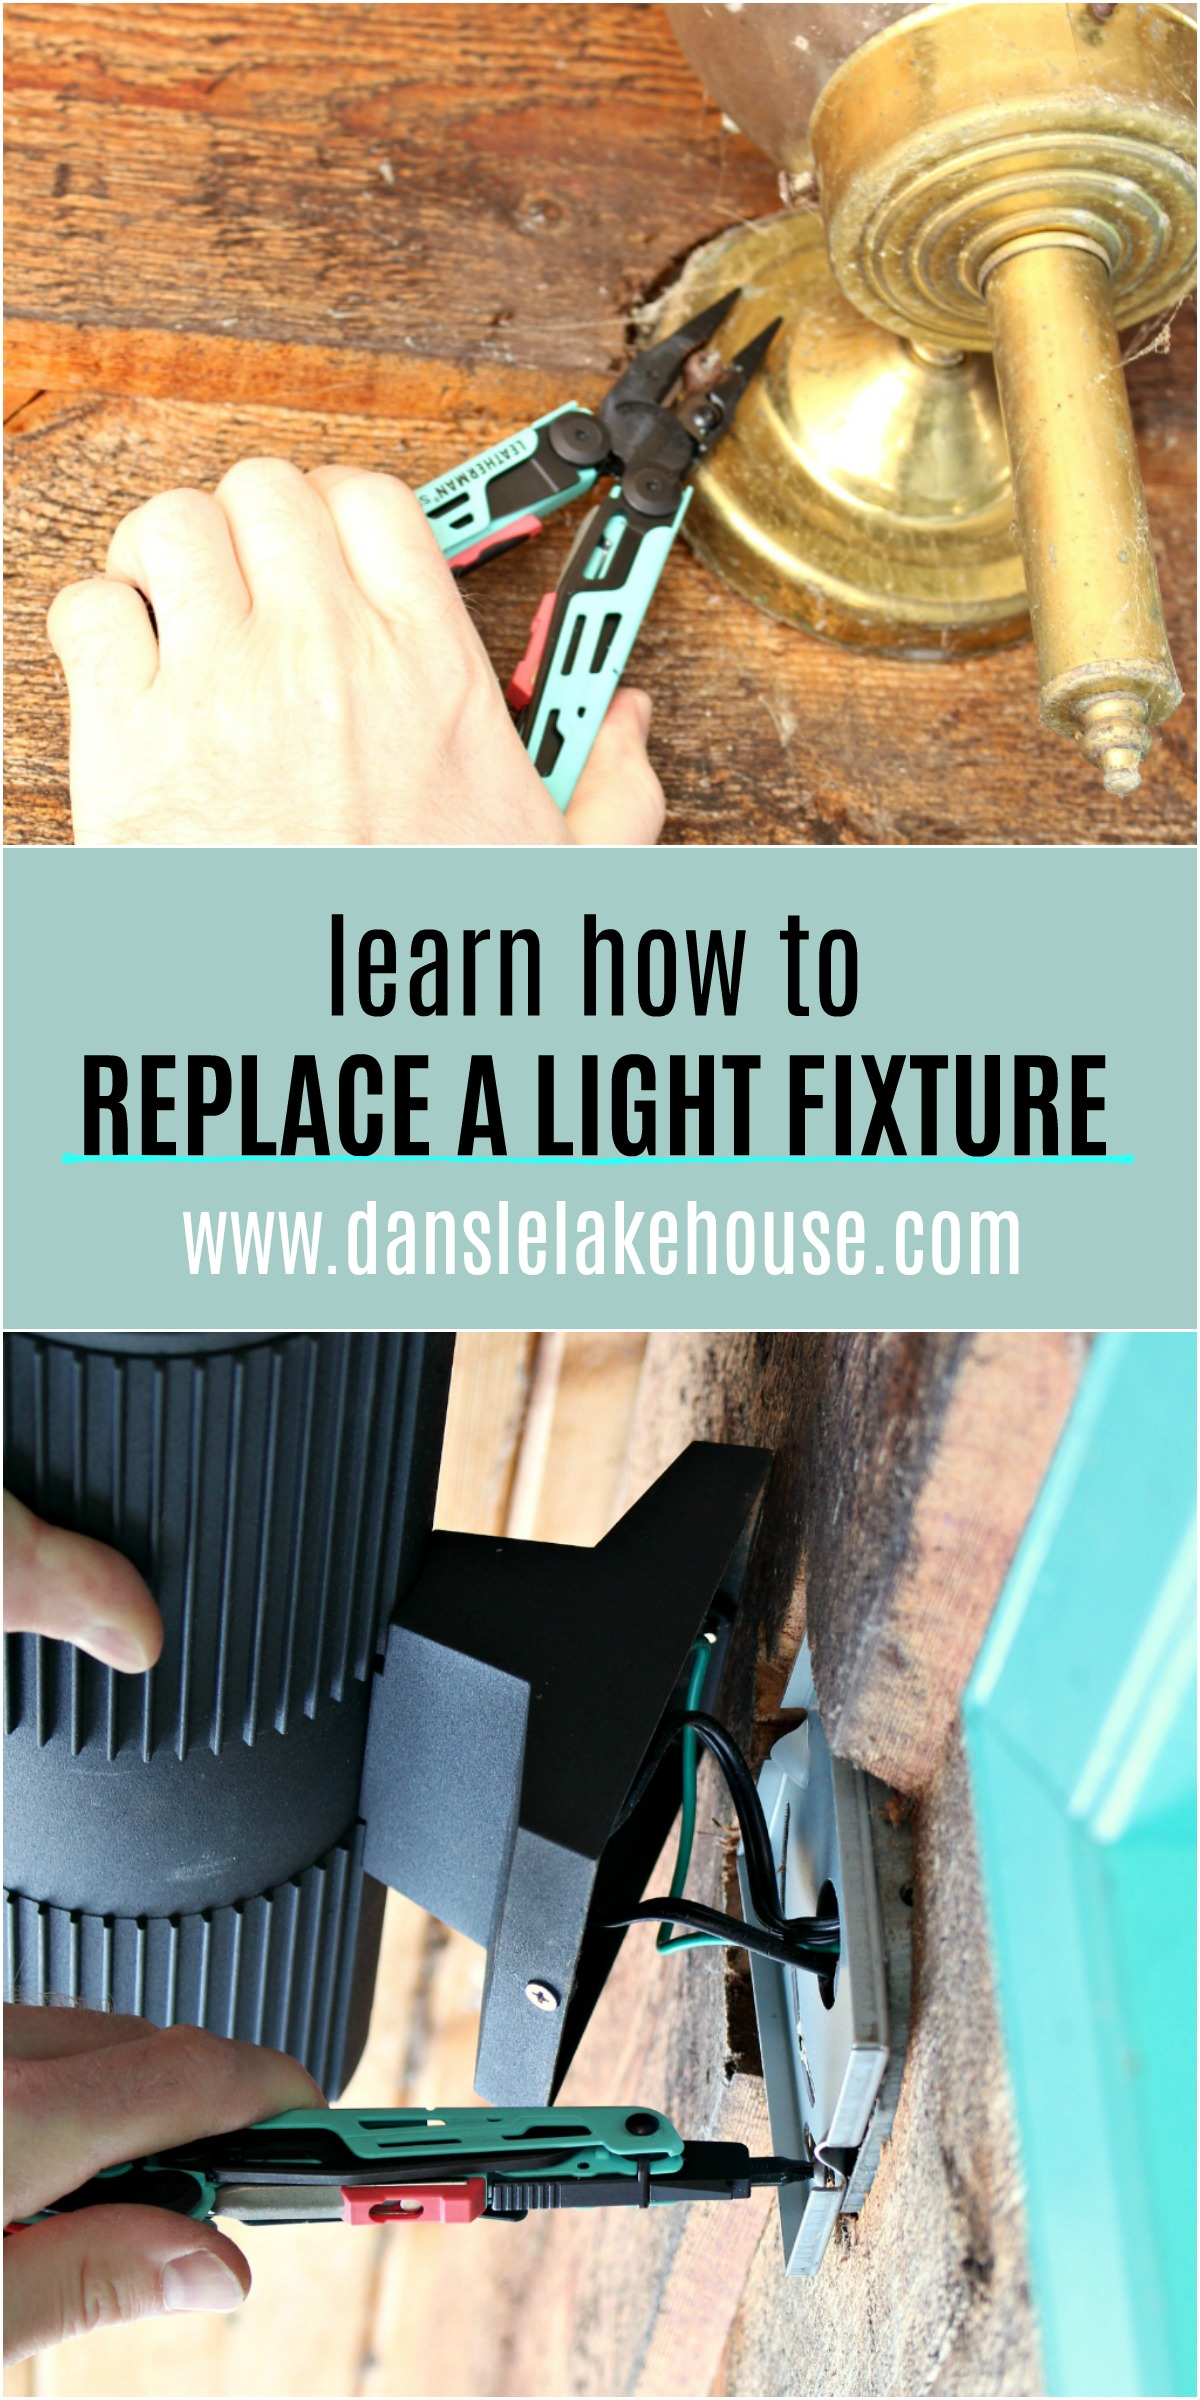 Learn how to replace a light fixture